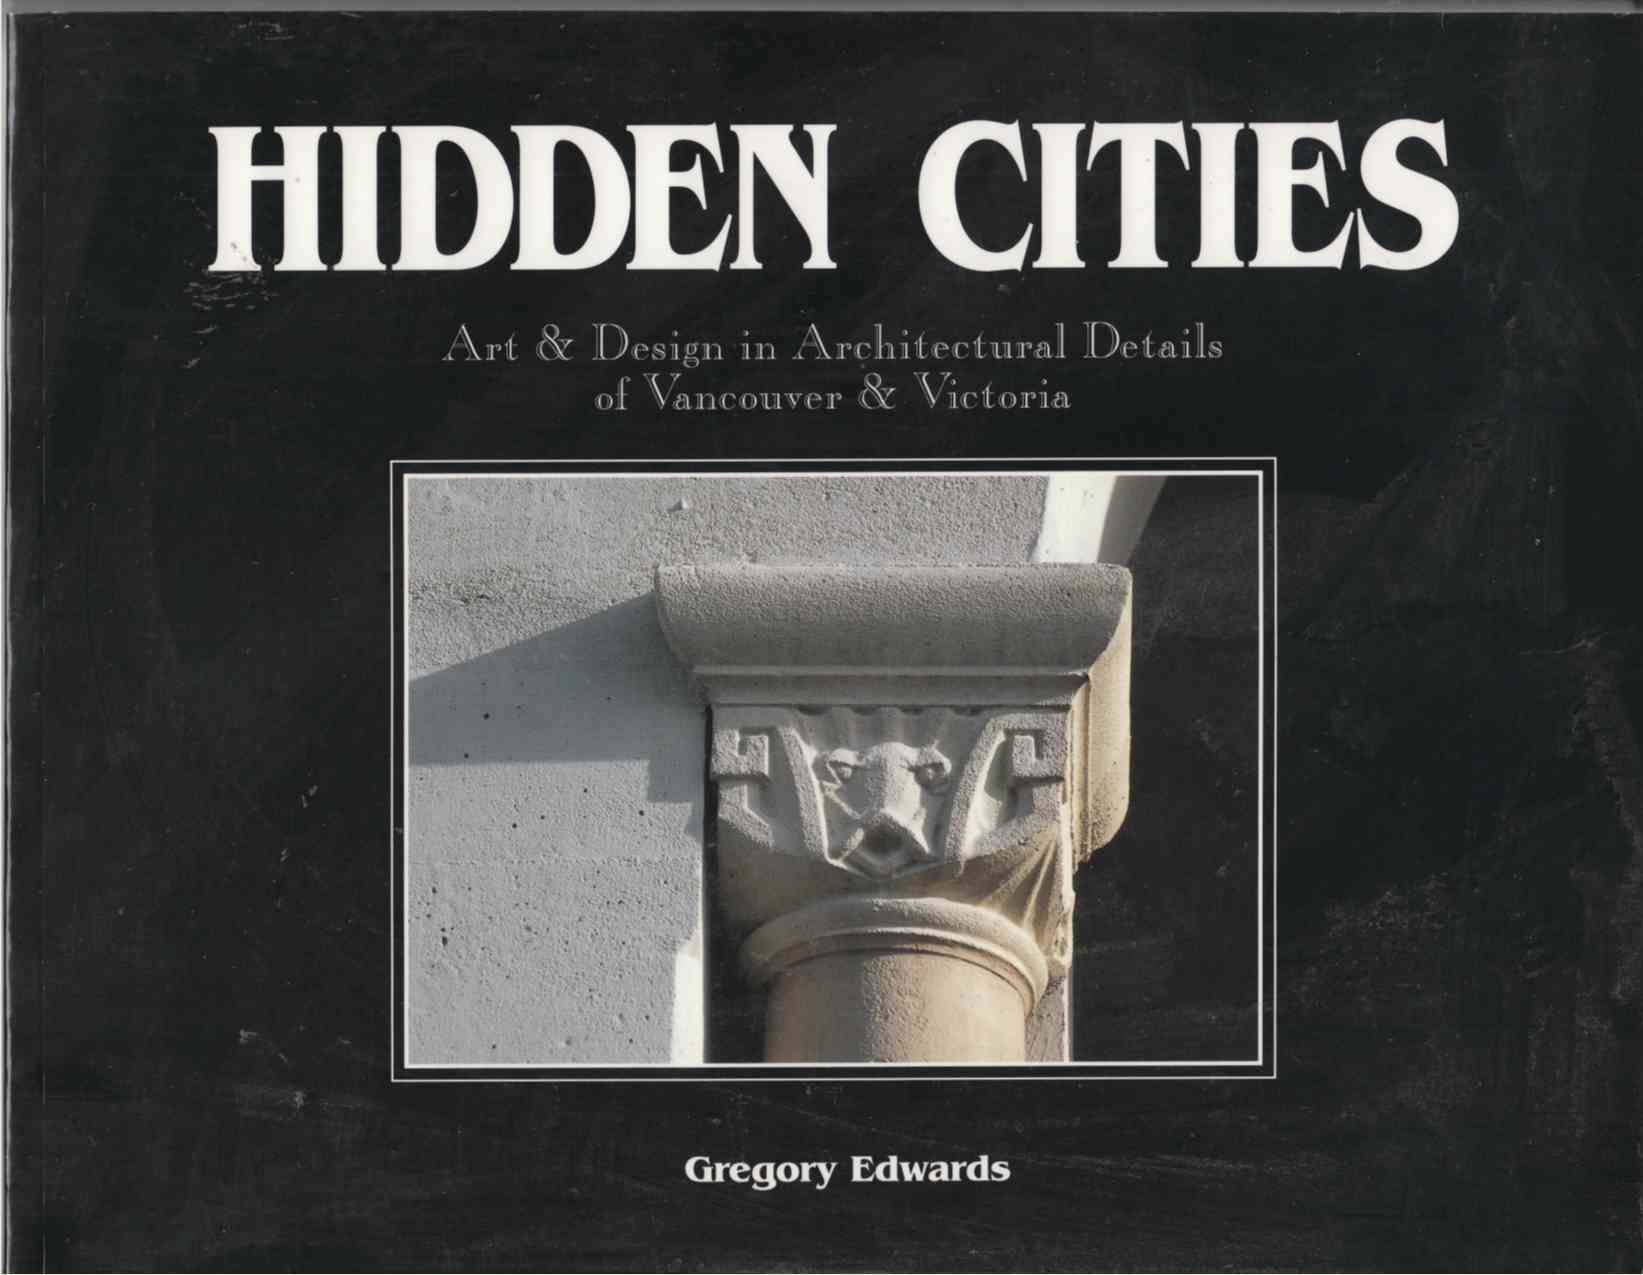 Image for Hidden Cities Art & Design in Architectural Details of Vancouver & Victoria